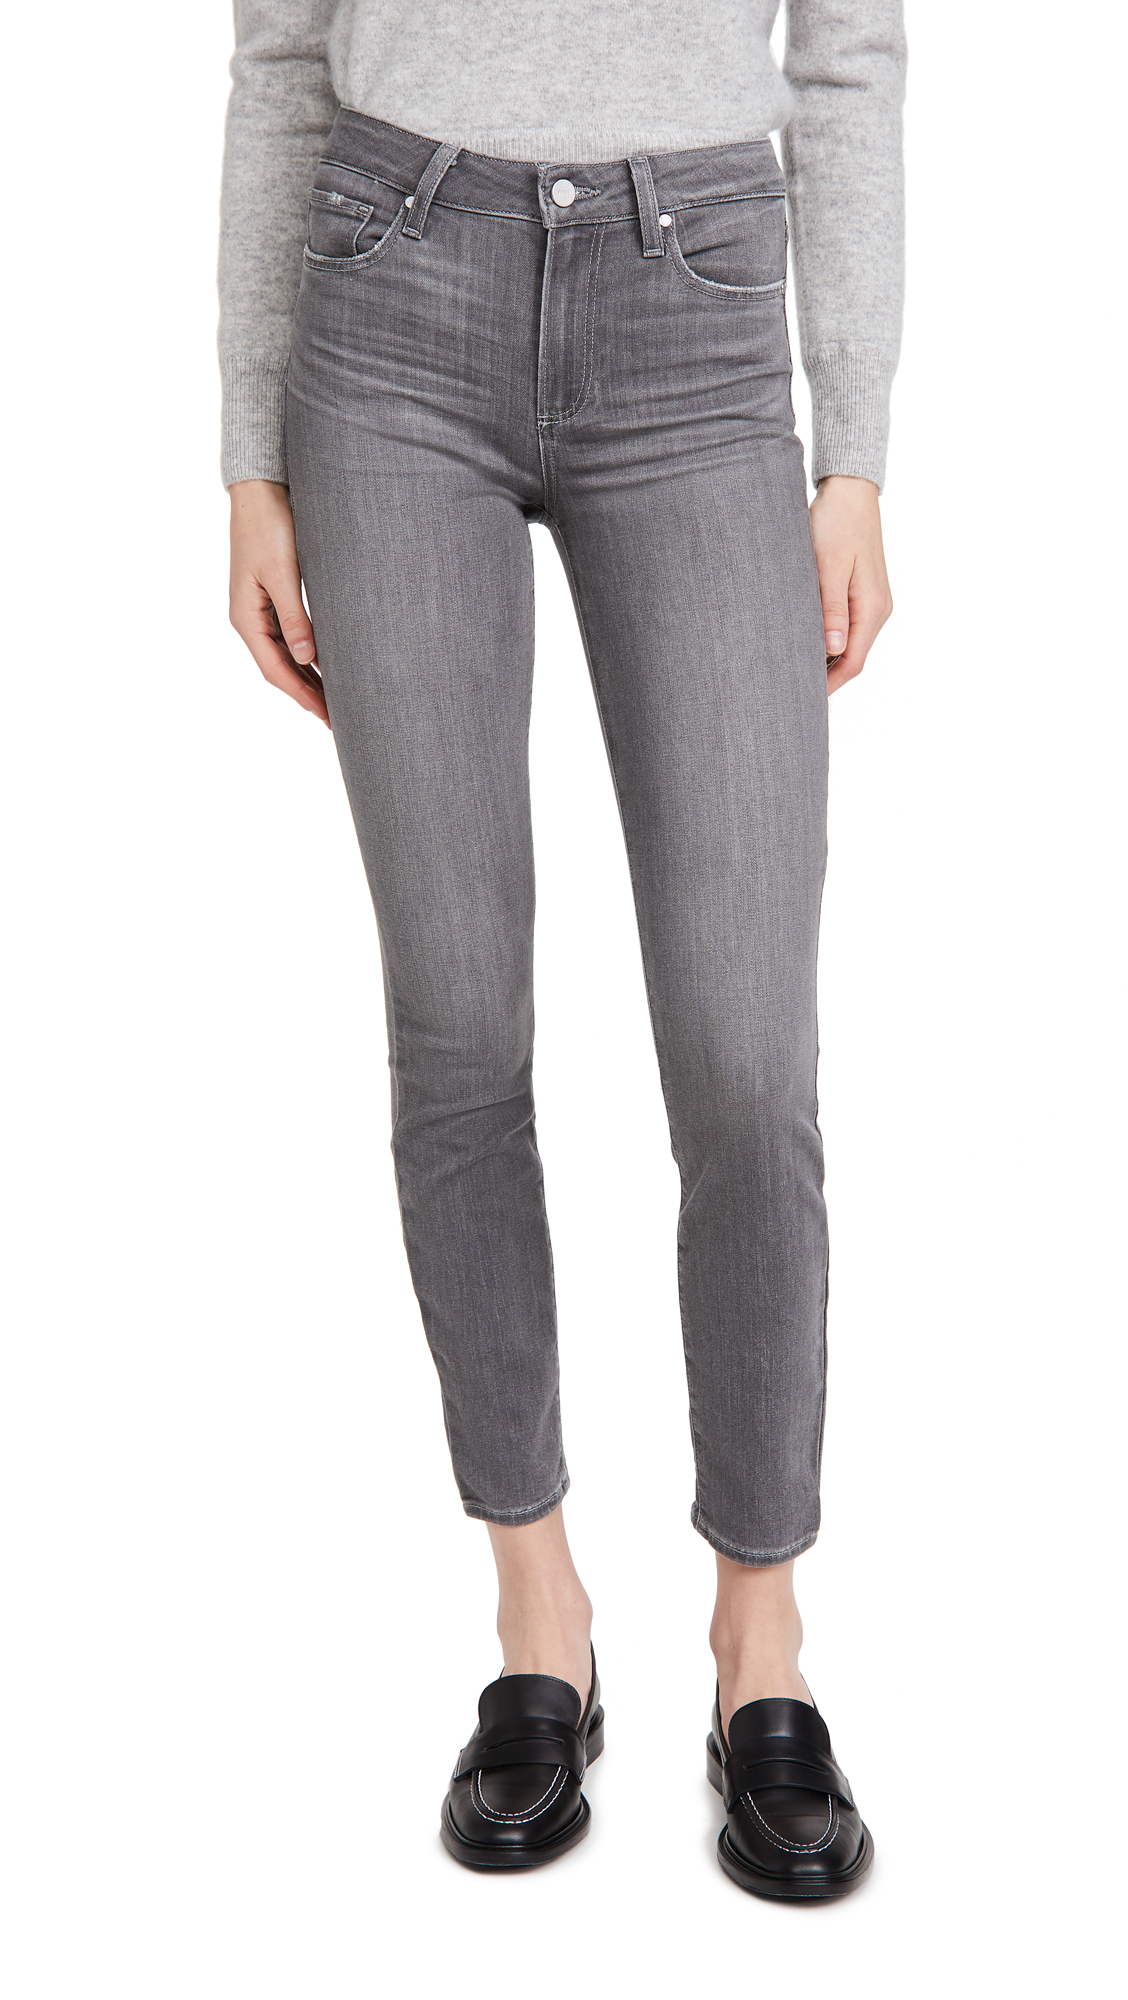 PAIGE Hoxton Ankle Jeans in Stone Dust